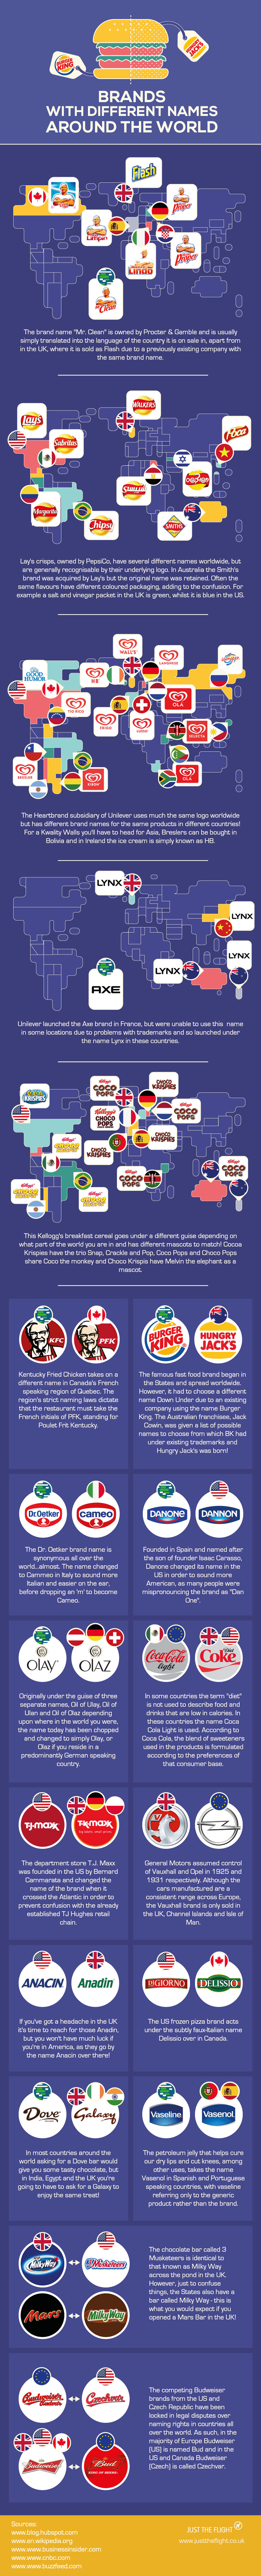 Brands with Different Names Around the World Infographic